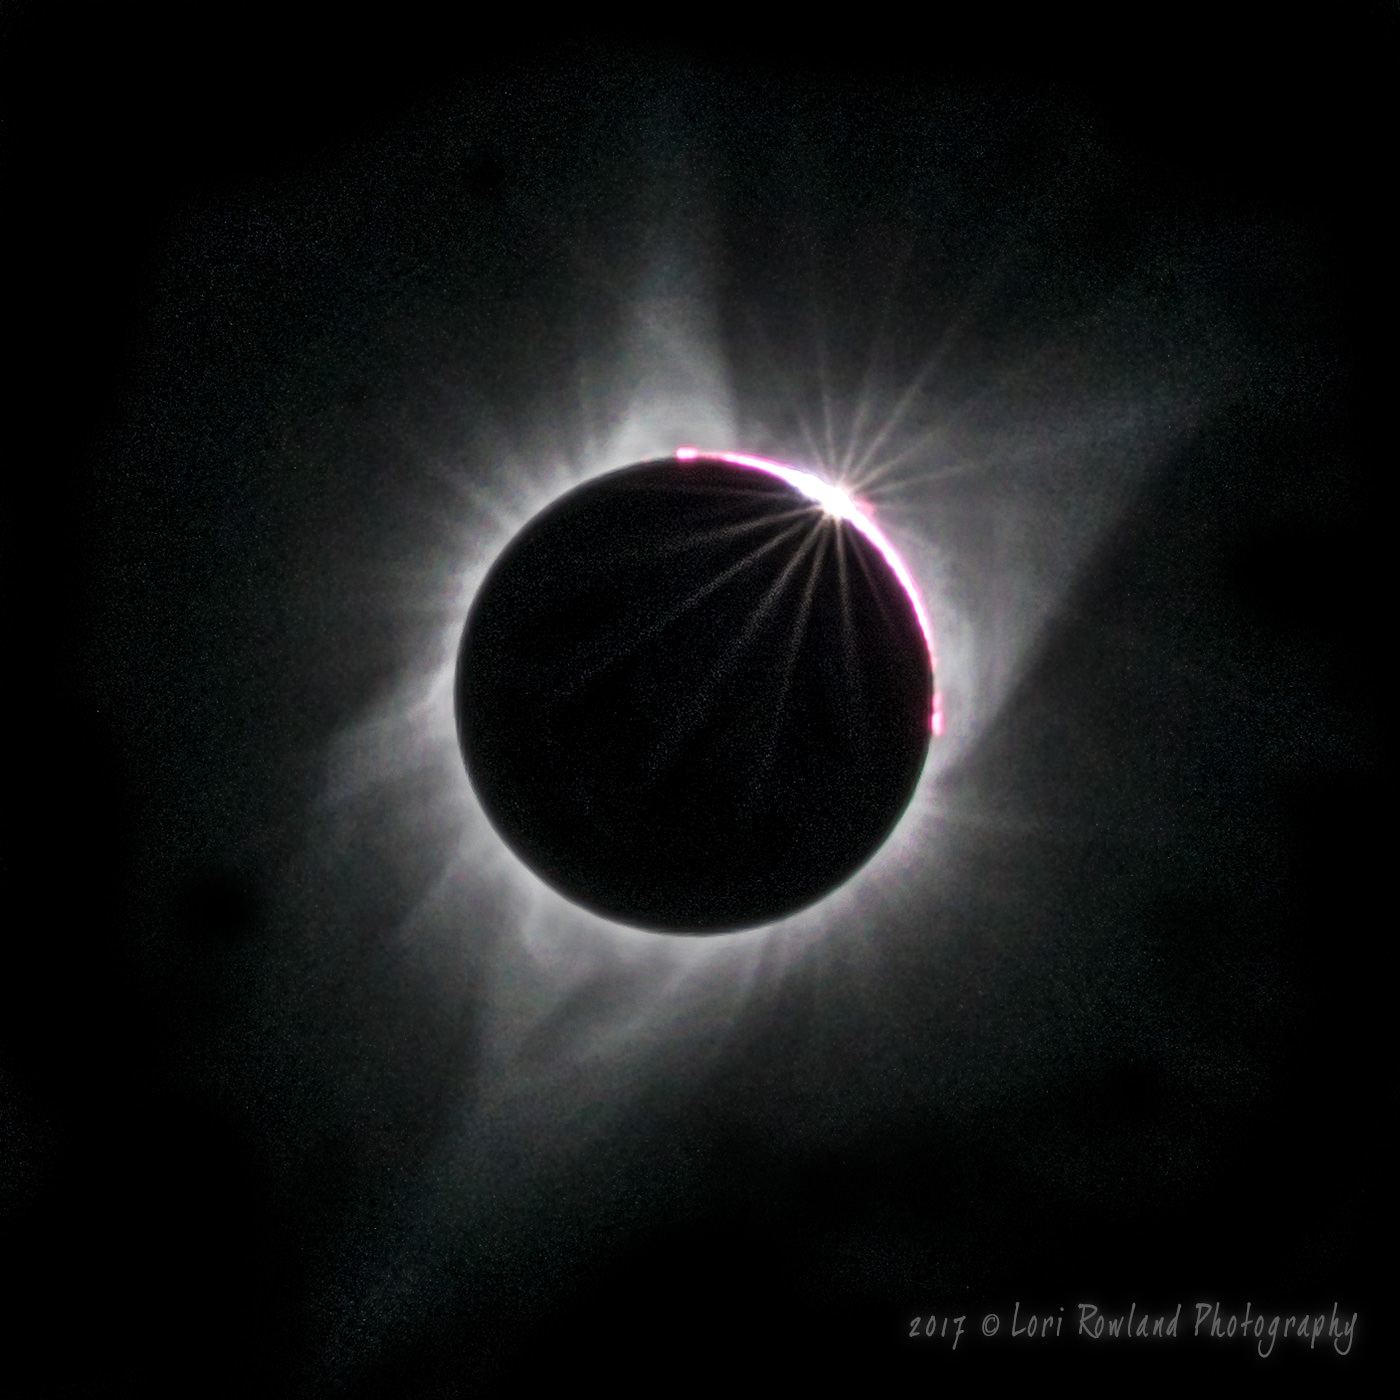 A Diamond Ring captured during the 2017 Total Solar Eclipse